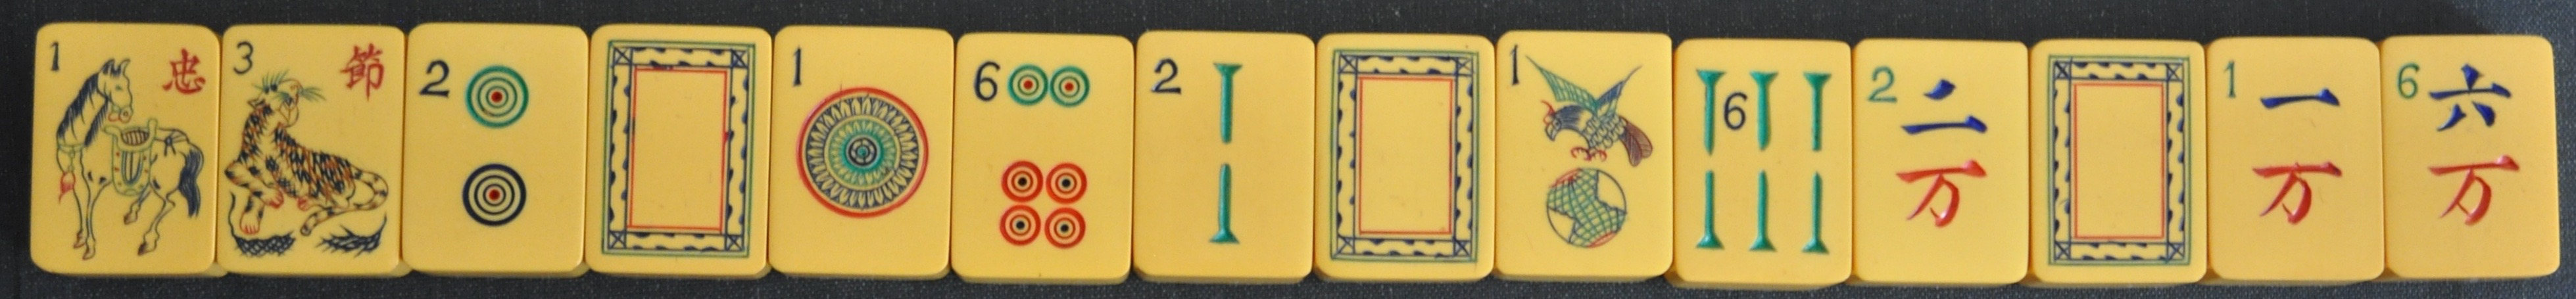 Vintage Chinese Bakelite 8 Character MahJong Tile with Brick Red Wafer Back